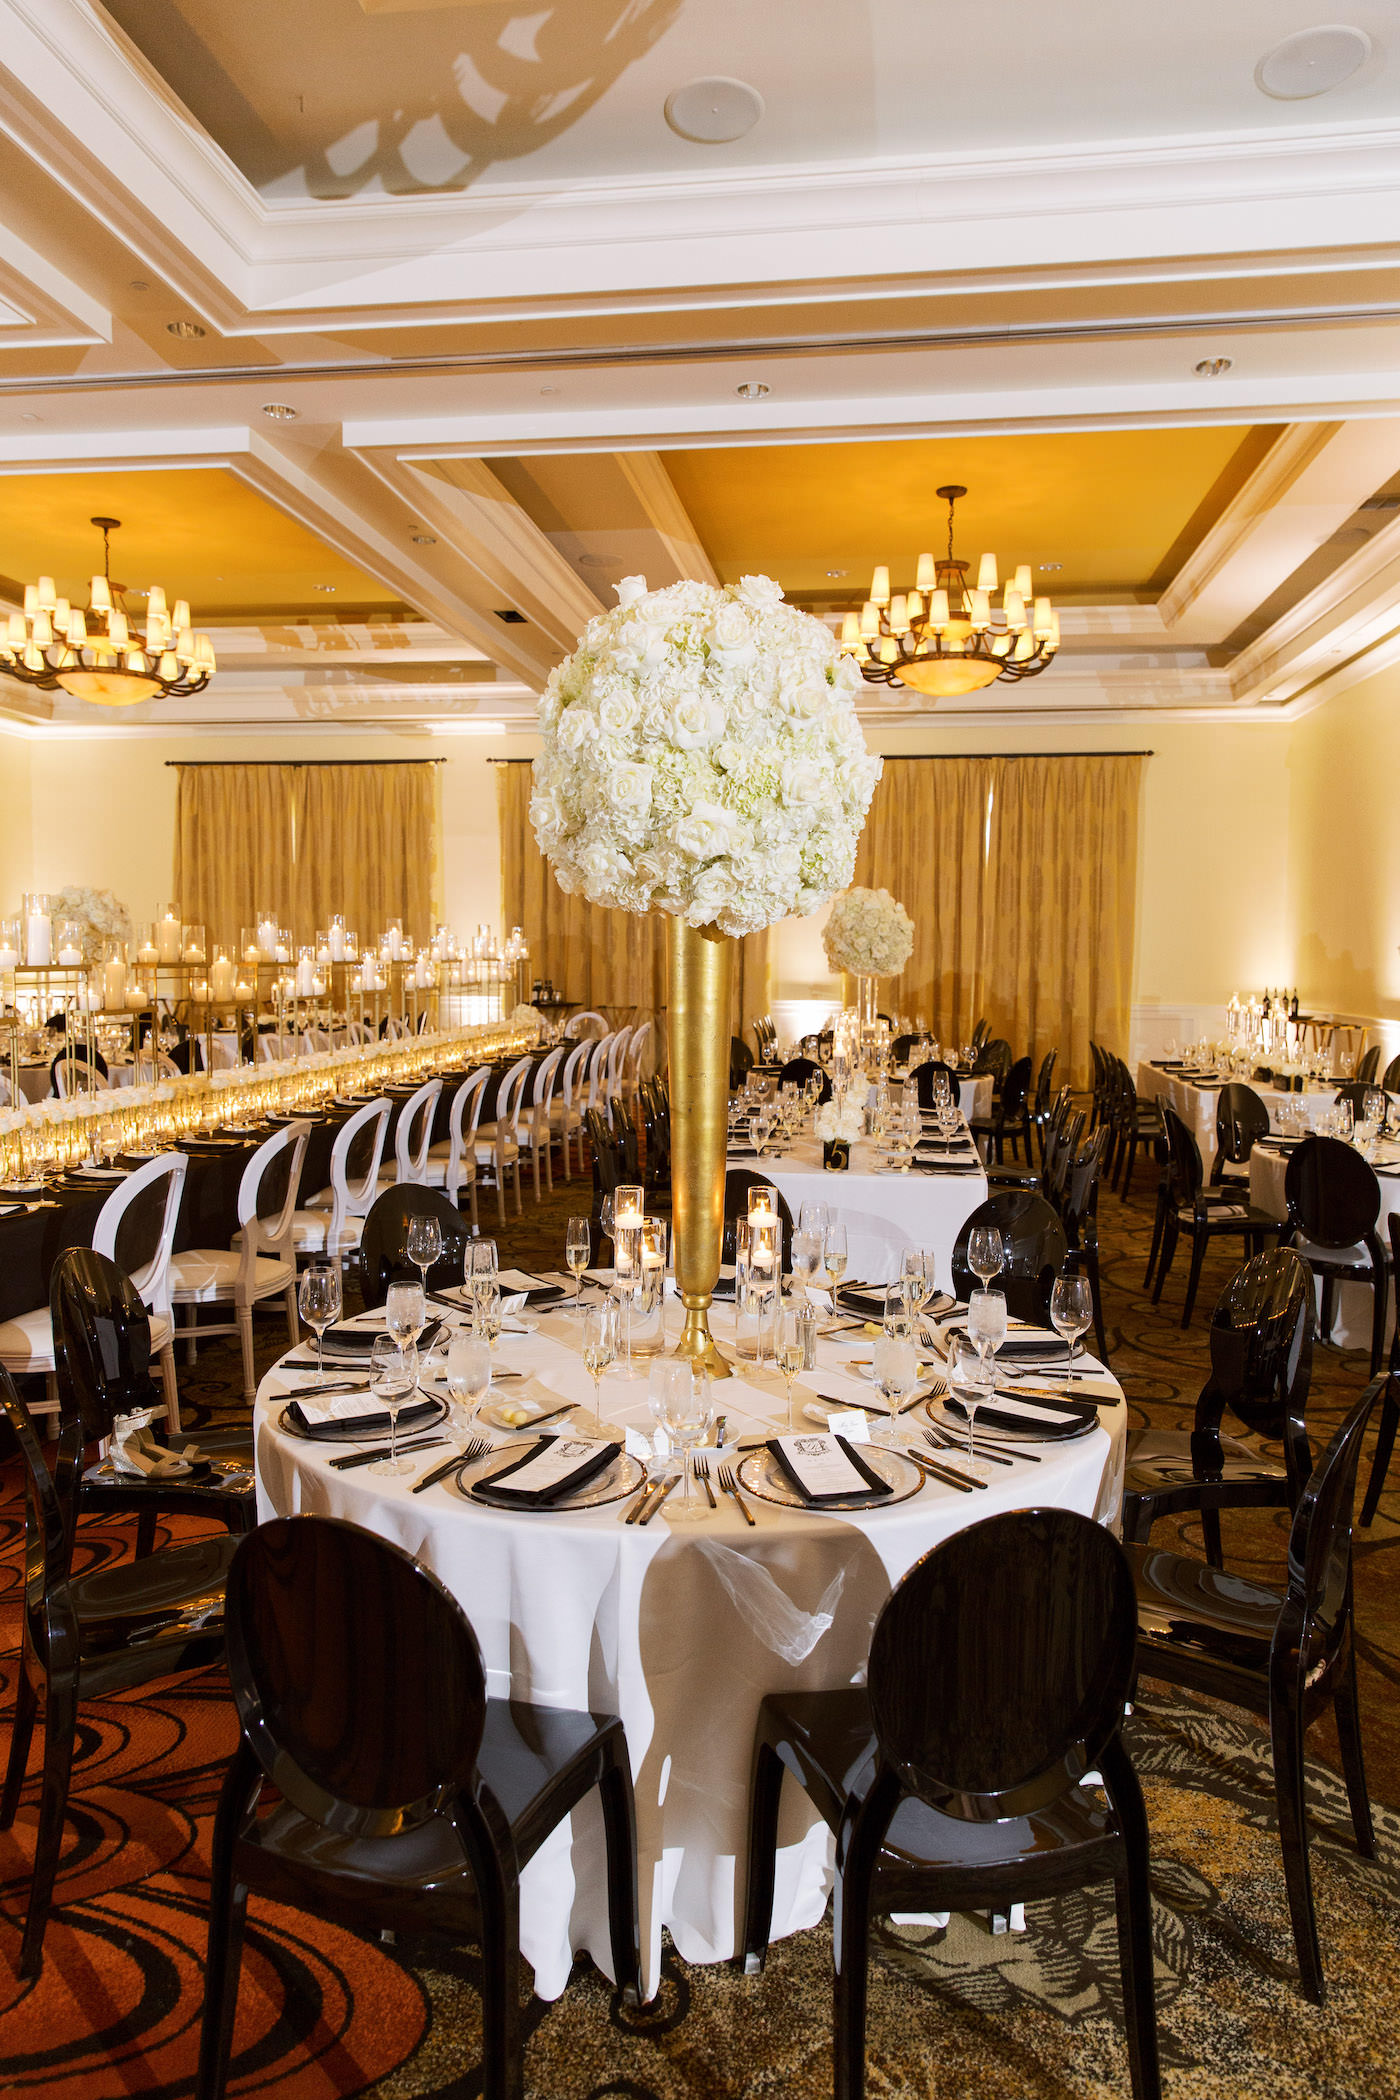 Classic Timeless Elegant Ballroom Wedding Reception Decor, Round Table with White Linen, Black Chairs, Tall Gold Vase with White Hydrangeas Centerpiece | Clearwater Beach Hotel Wedding Venue Sandpearl Resort | Tampa Bay Wedding Planner Parties A'la Carte